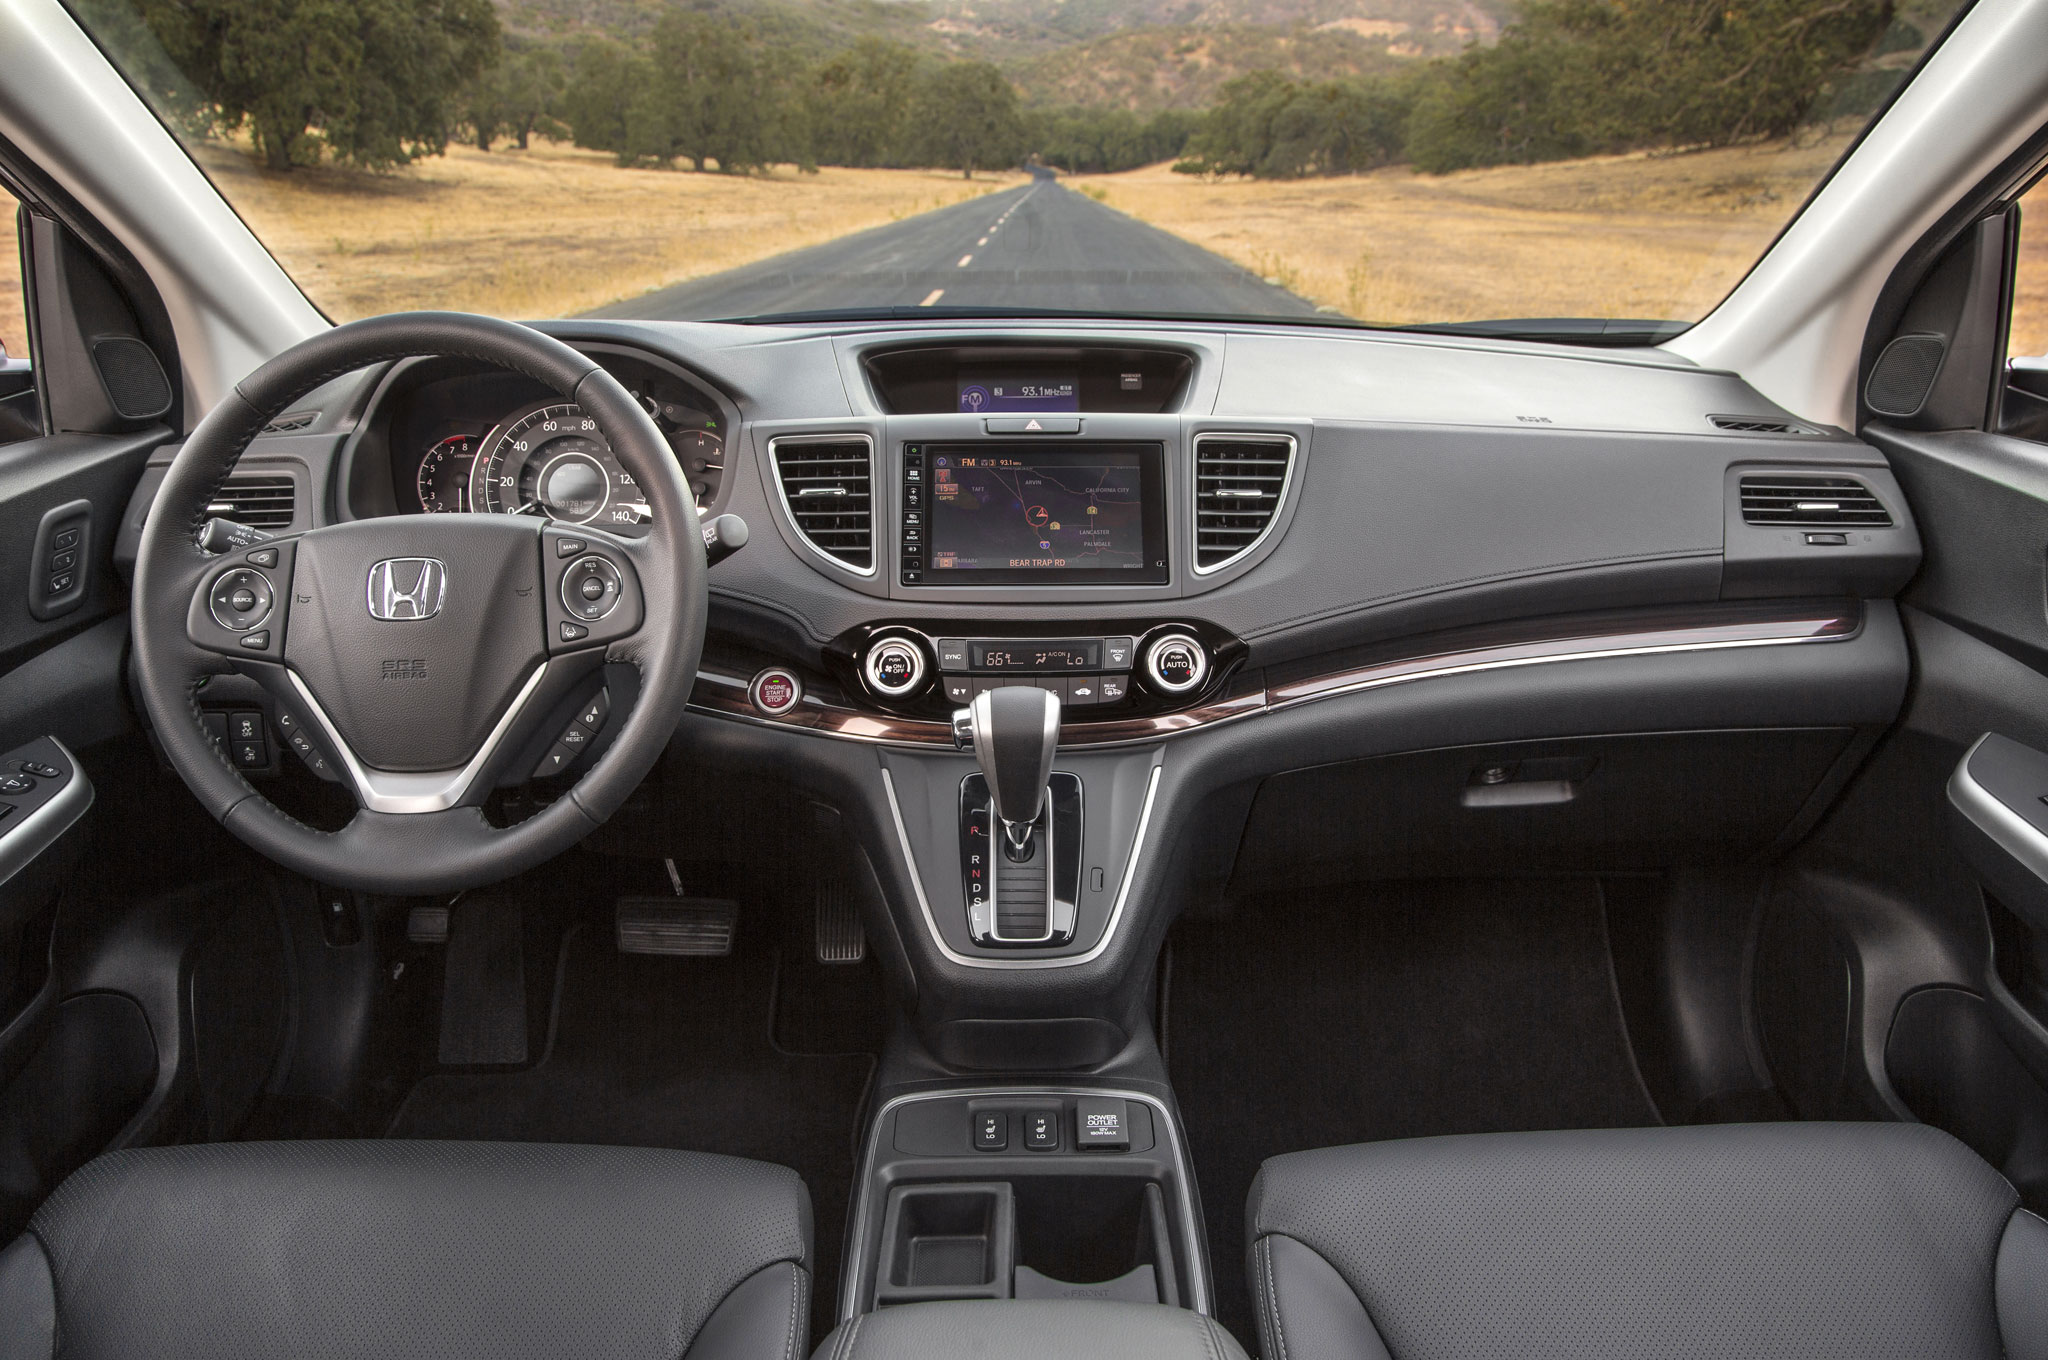 for hood refreshed crv changes turned out review front v as cr and honda the under a with wildsau well quarter few reviews inside